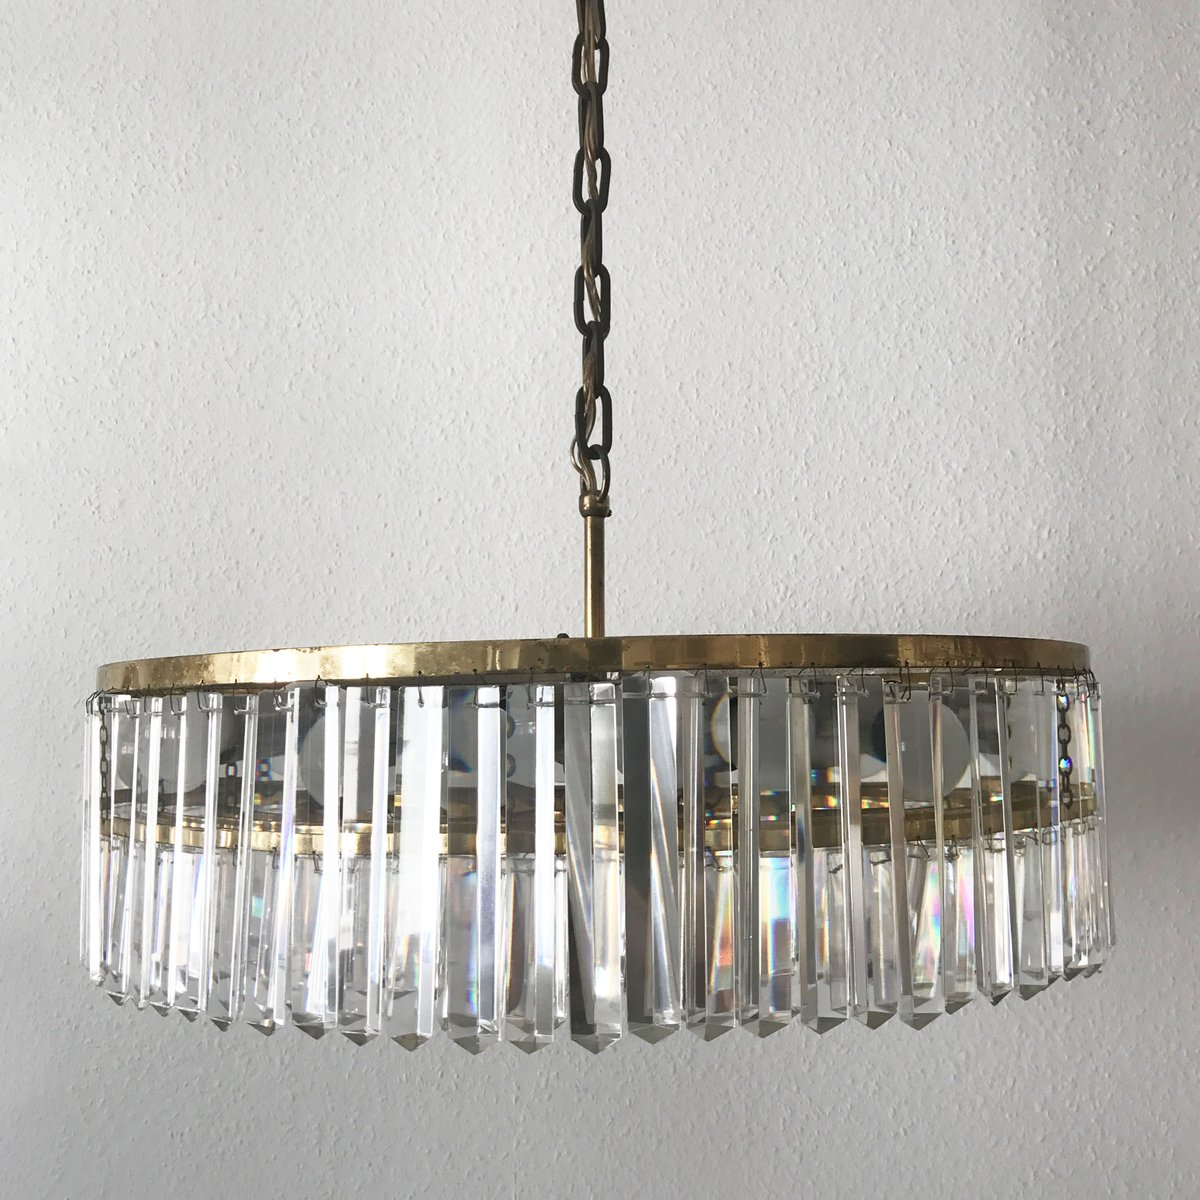 Mid century large crystal glass chandelier from bakalowits sohne mid century large crystal glass chandelier from bakalowits sohne 1950s aloadofball Choice Image